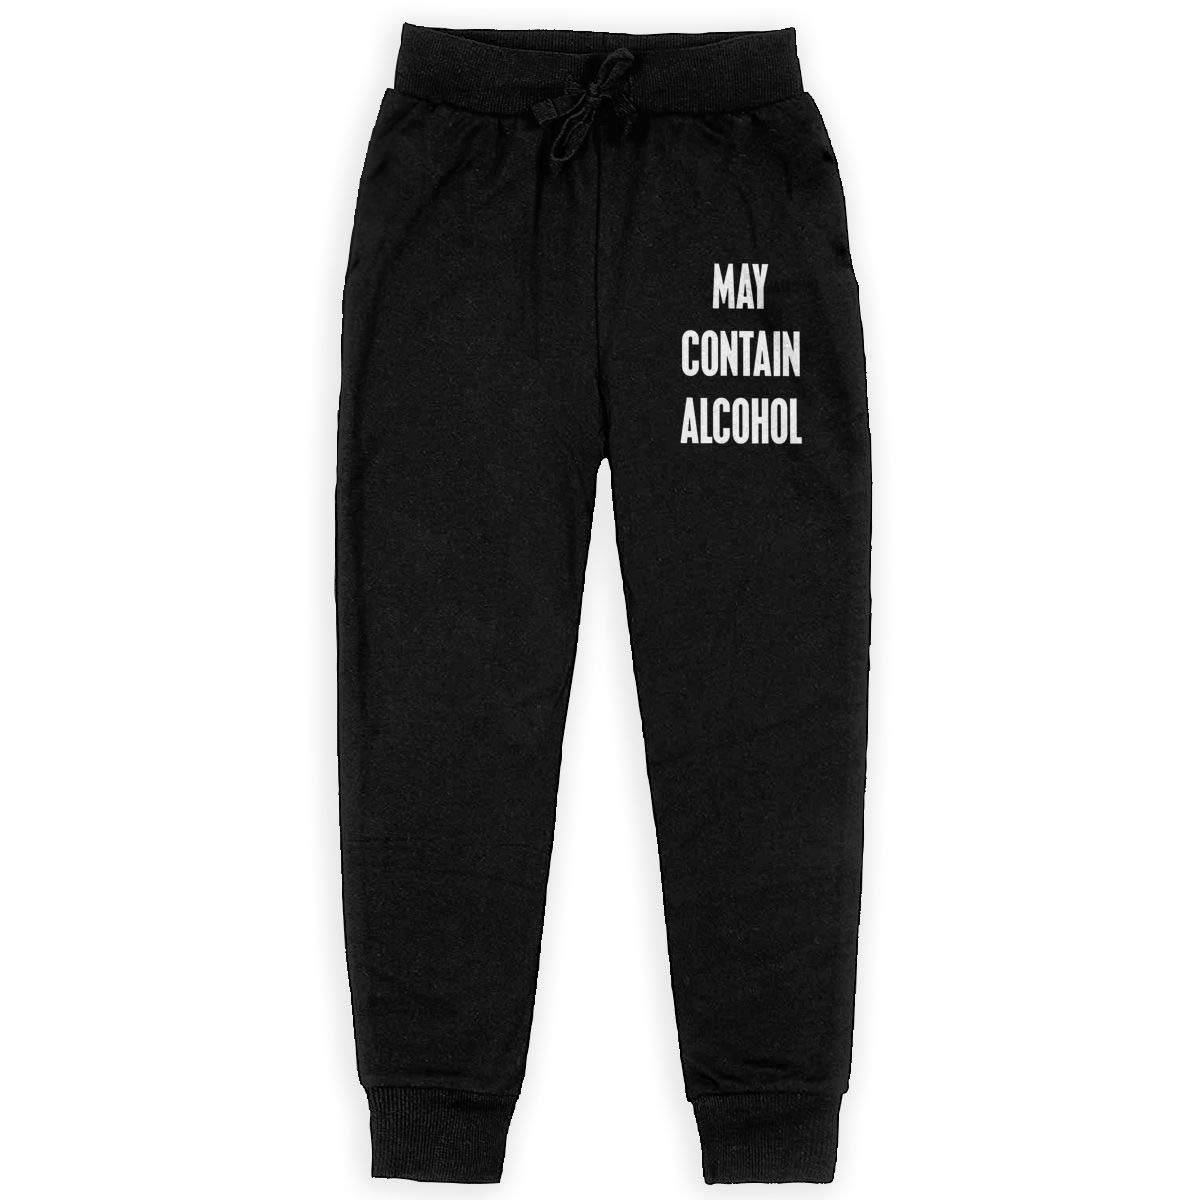 Dunpaiaa May Contain Alcohol Logo Boys Sweatpants,Joggers Sport Training Pants Trousers Black